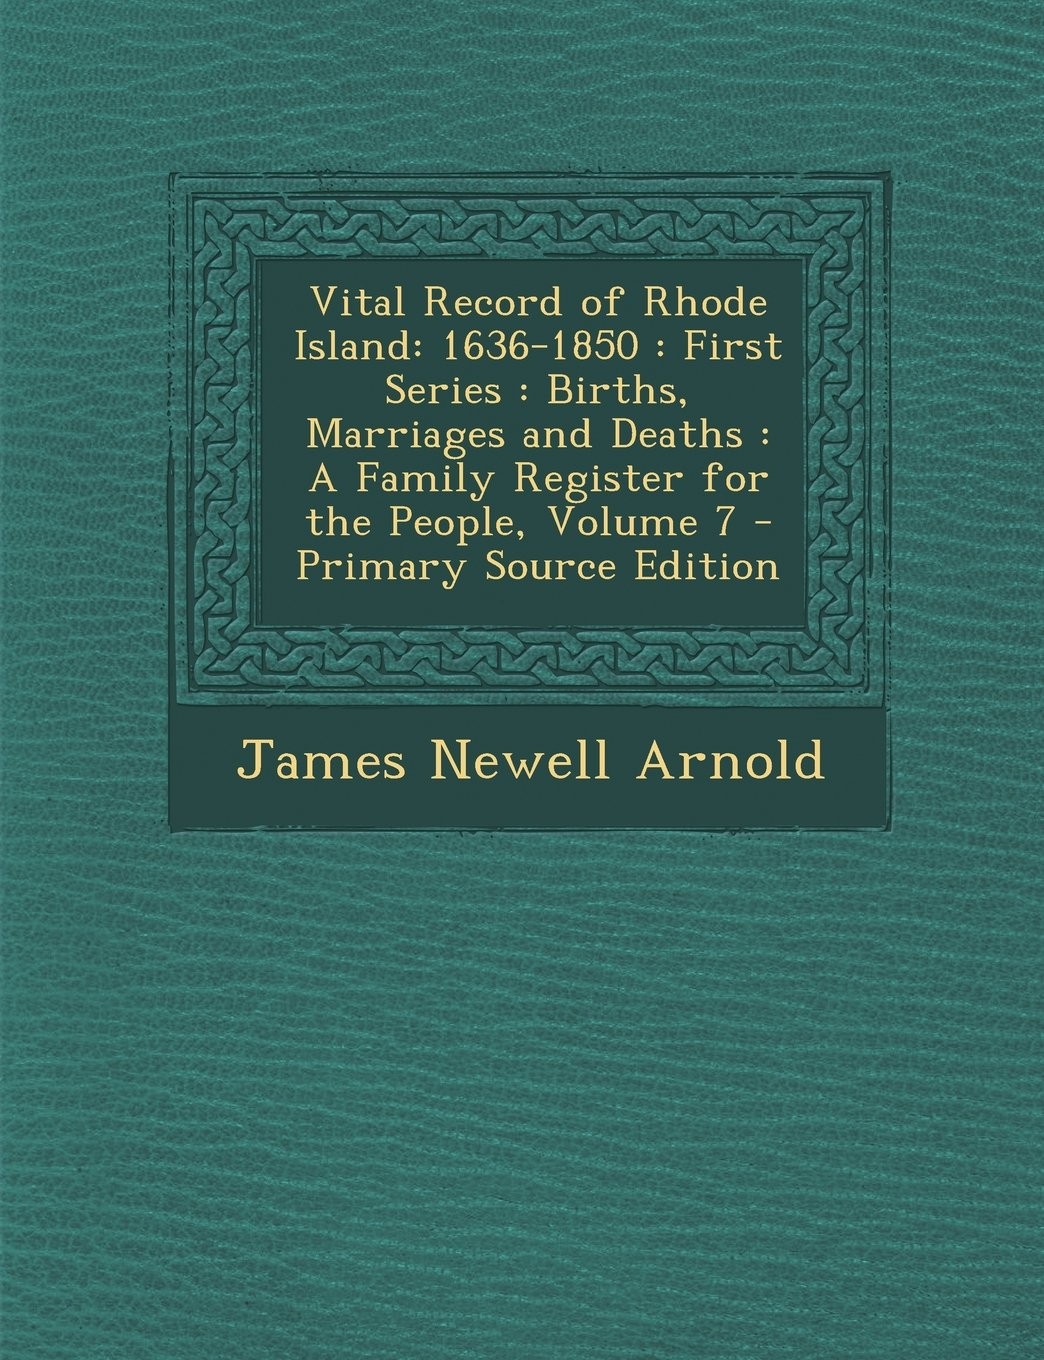 Vital Record of Rhode Island: 1636-1850: First Series: Births, Marriages and Deaths: A Family Register for the People, Volume 7 - Primary Source EDI pdf epub